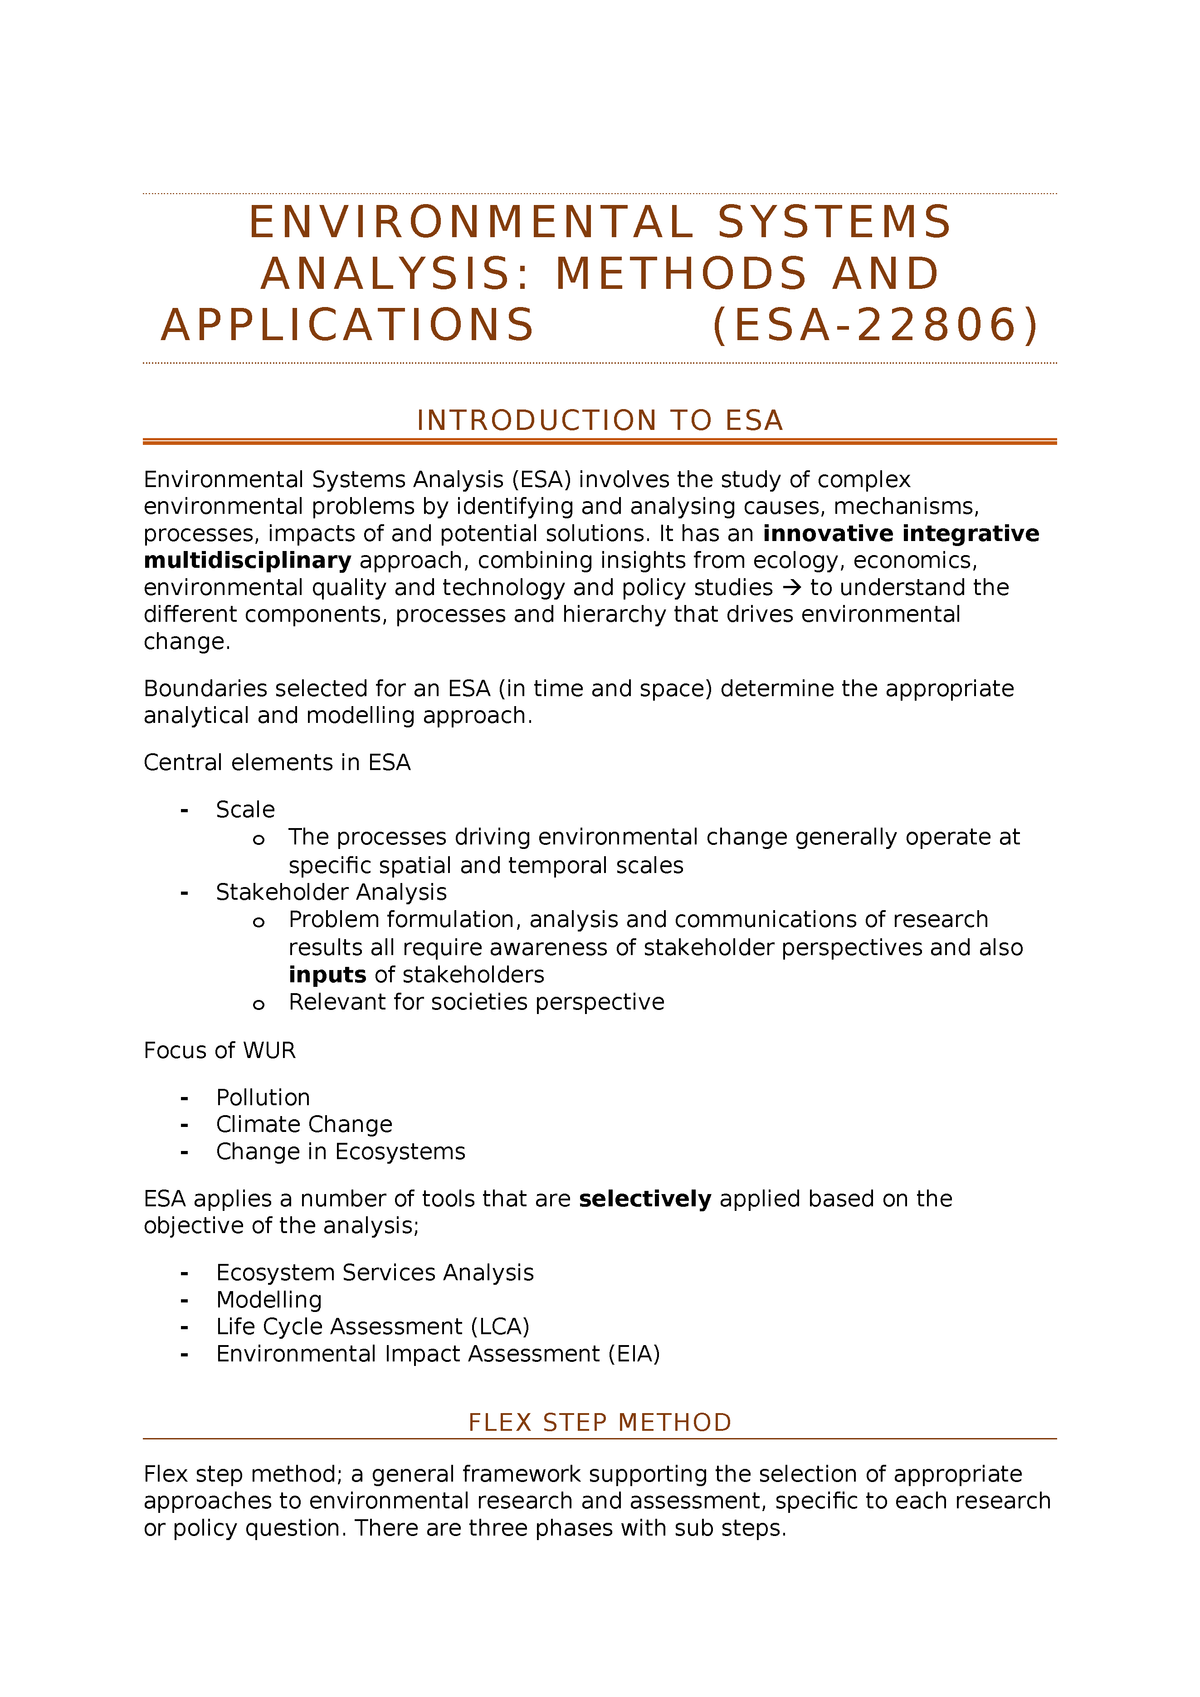 Having A Hard Time Focusing Research Identifies Complex Of >> Samenvatting Esa 22806 Environmental Systems Studeersnel Nl